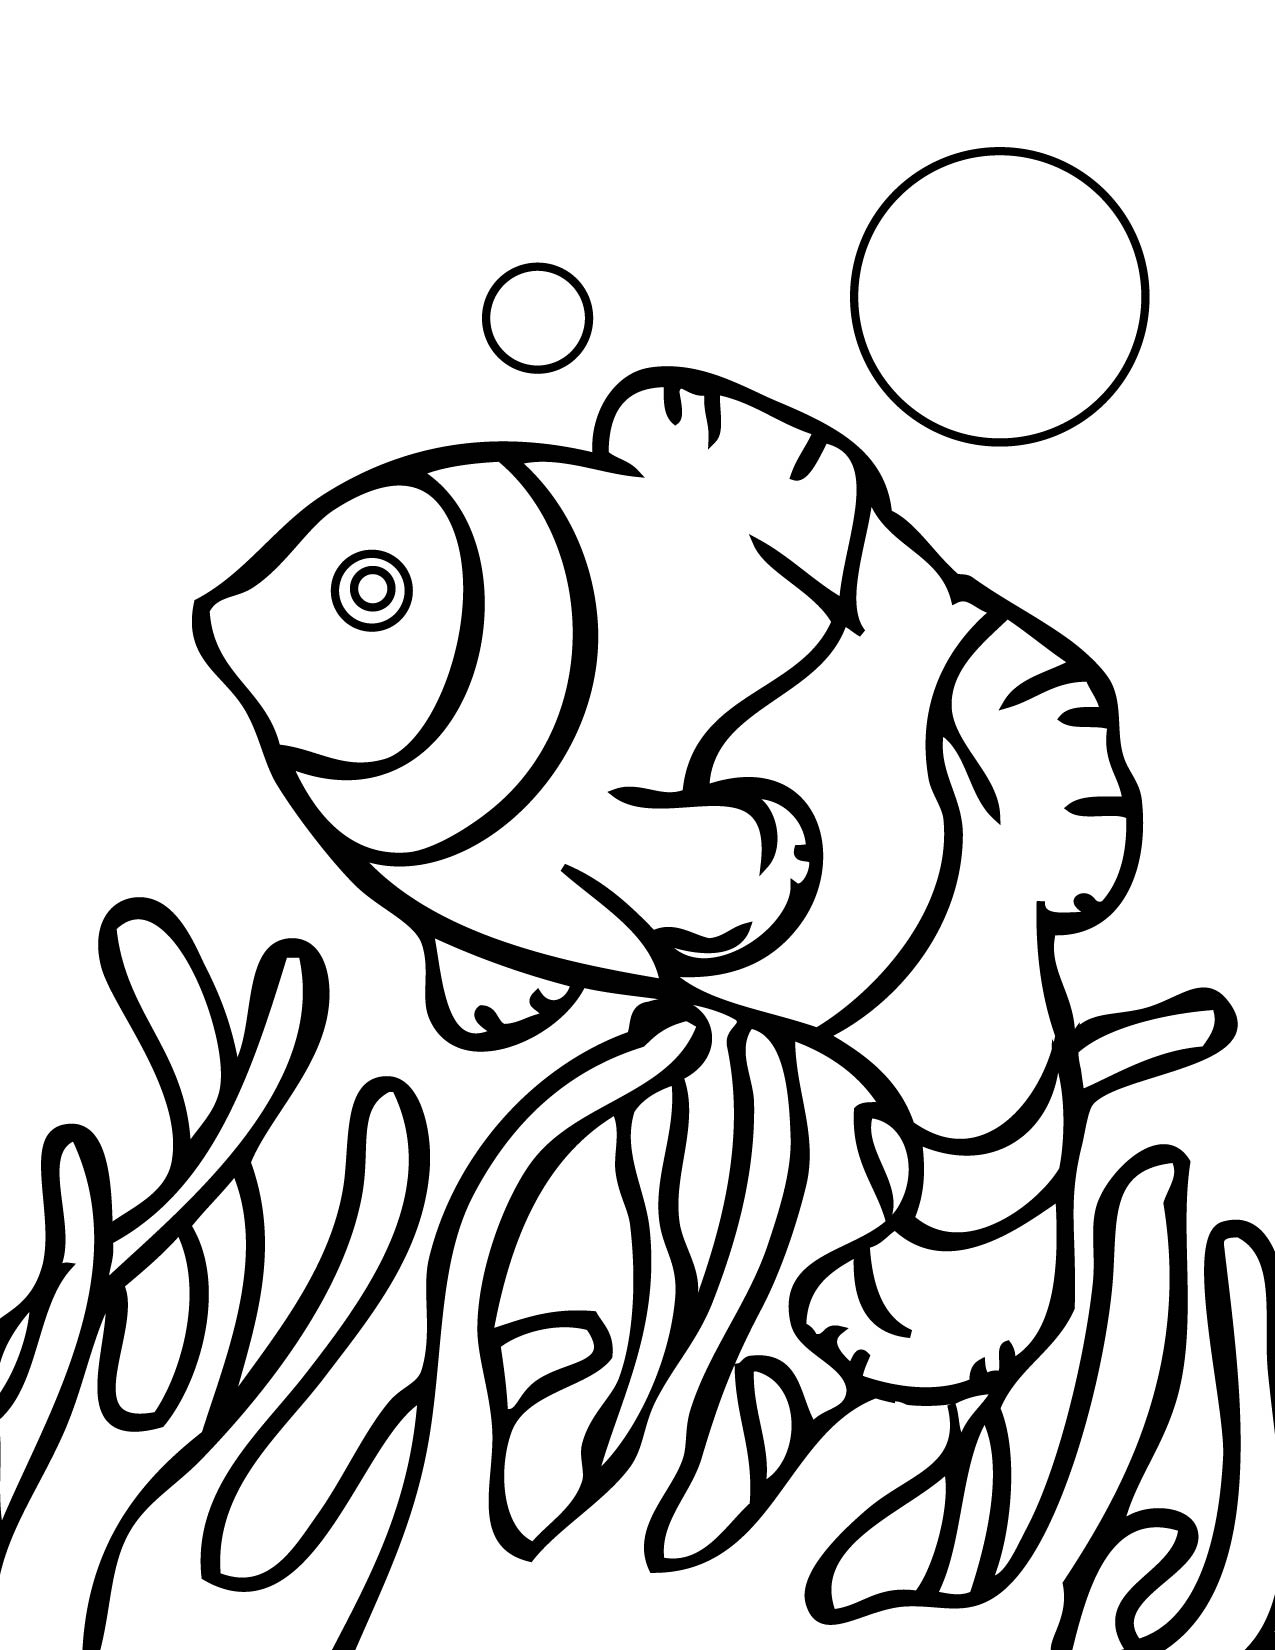 Coral reef fish drawing at free for for Coloring pages of coral reefs